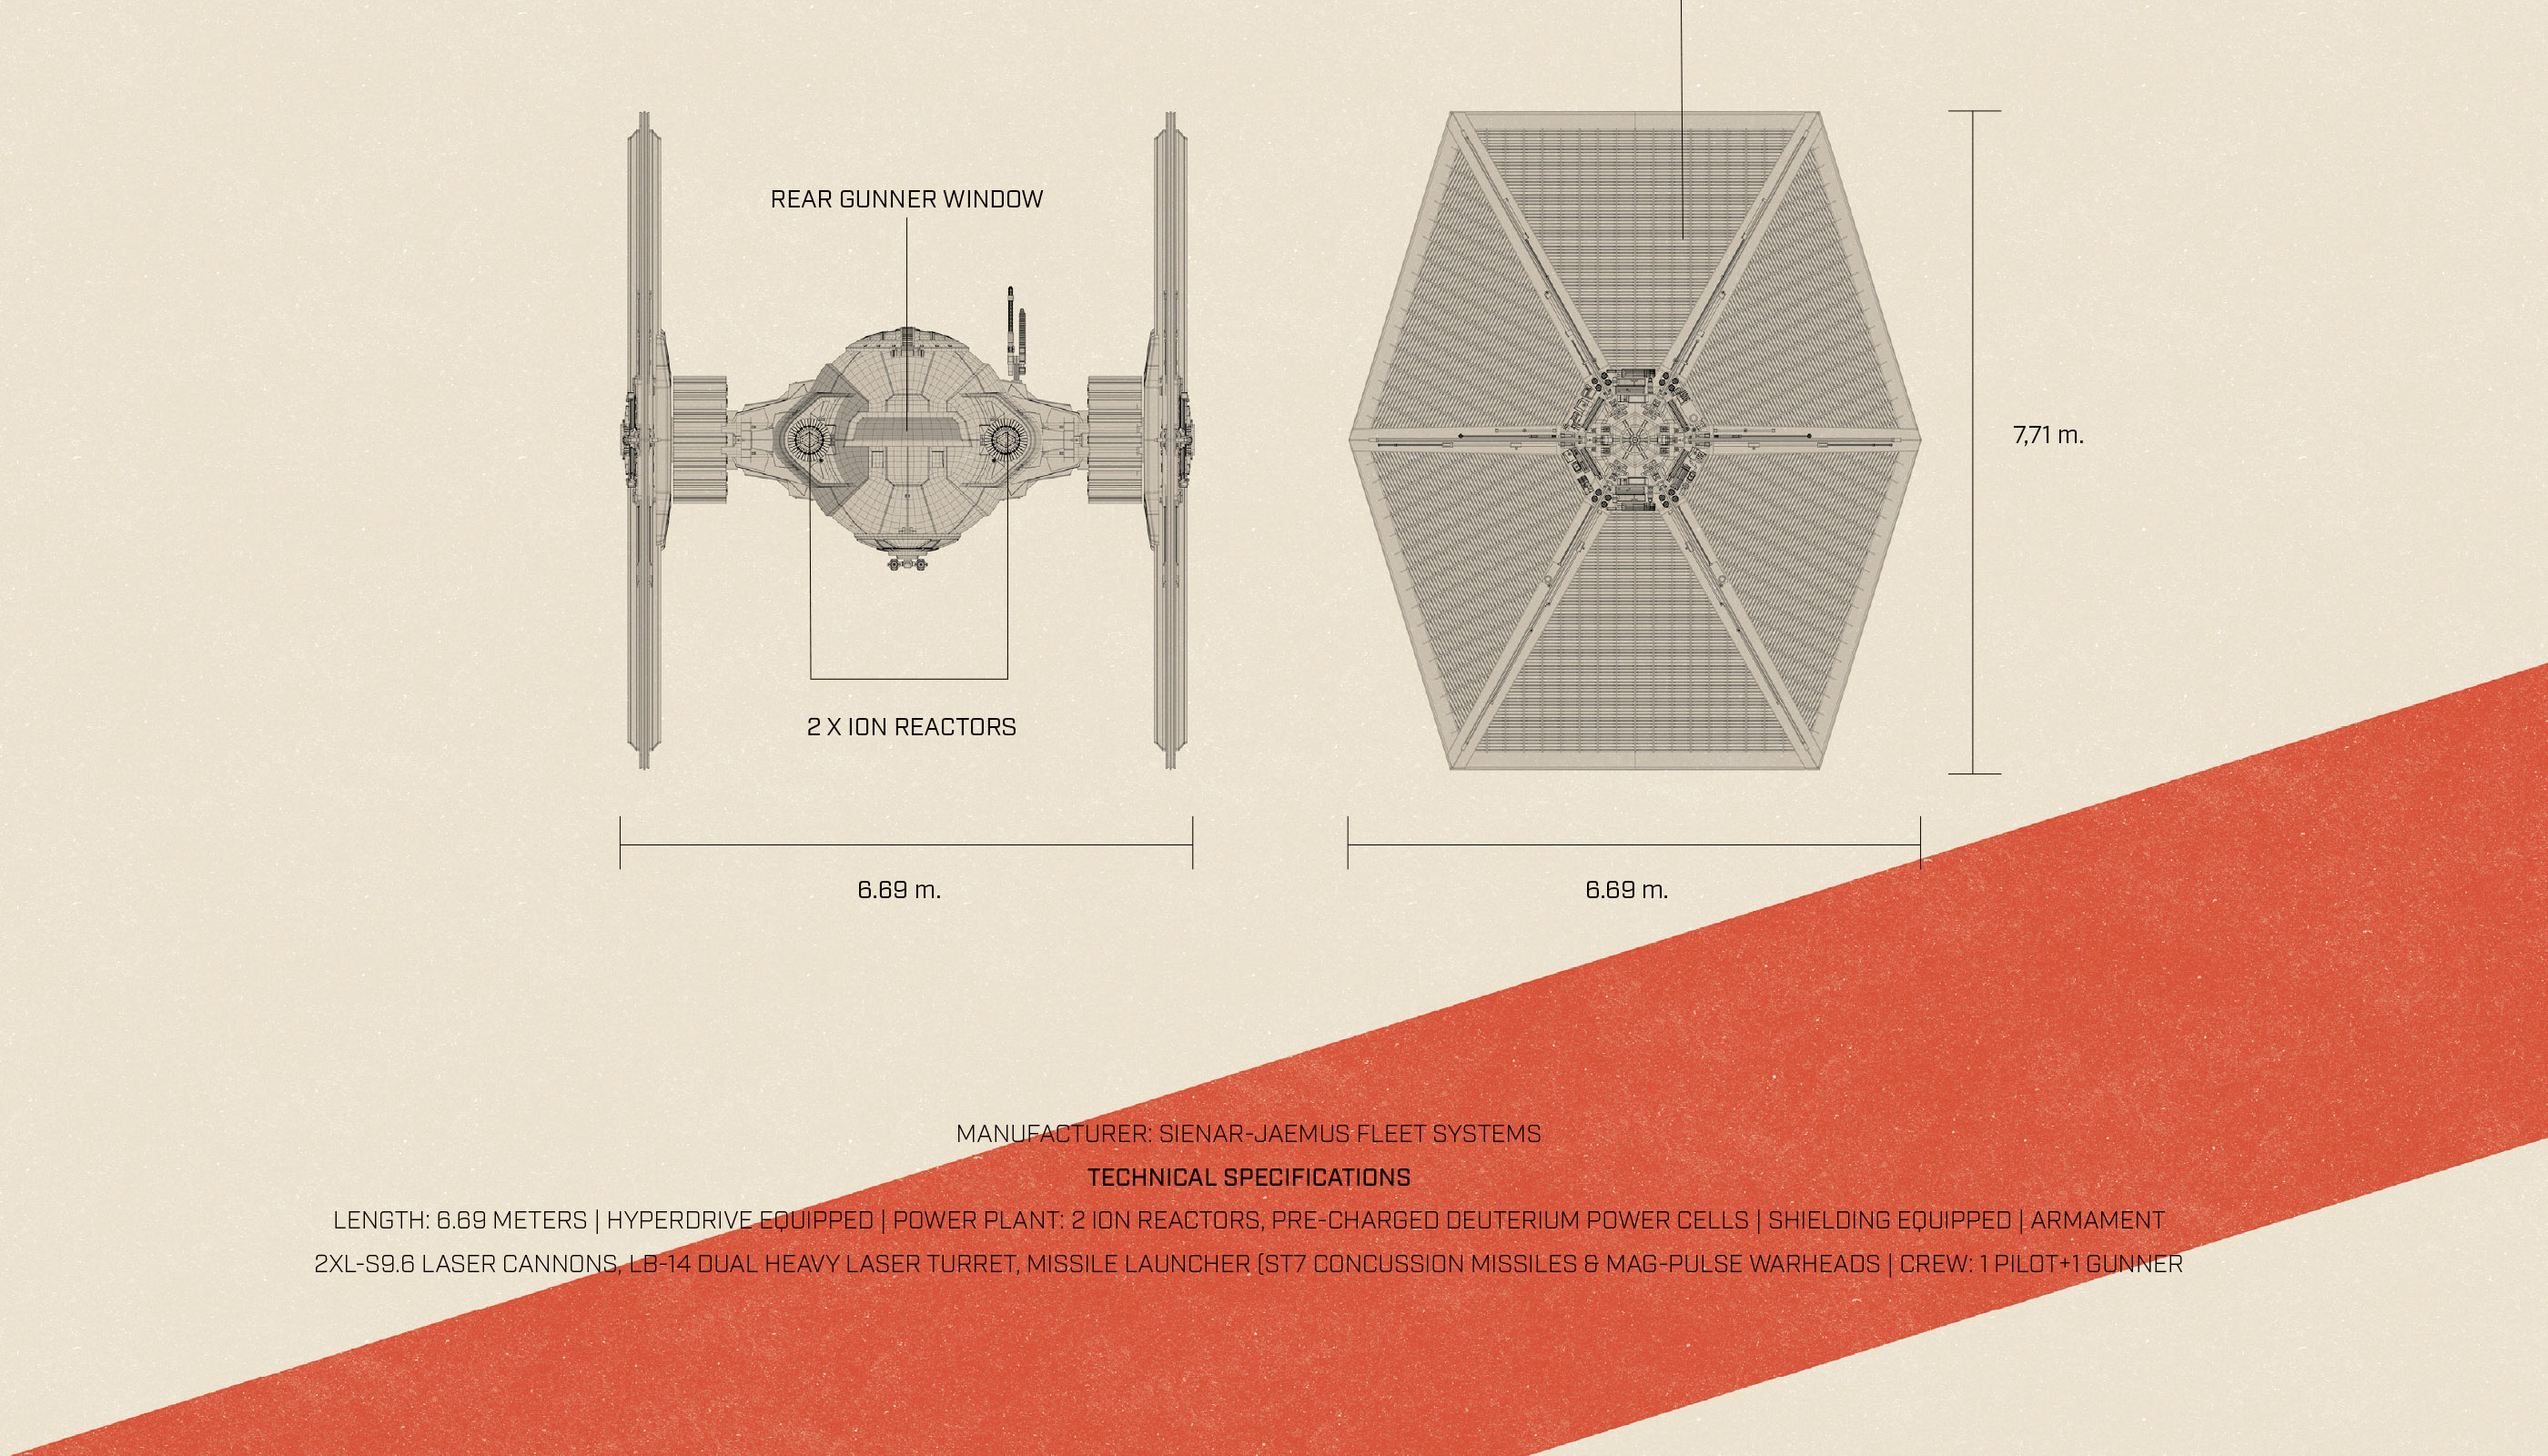 Star Wars The Force Awakens Special Edition posters detail